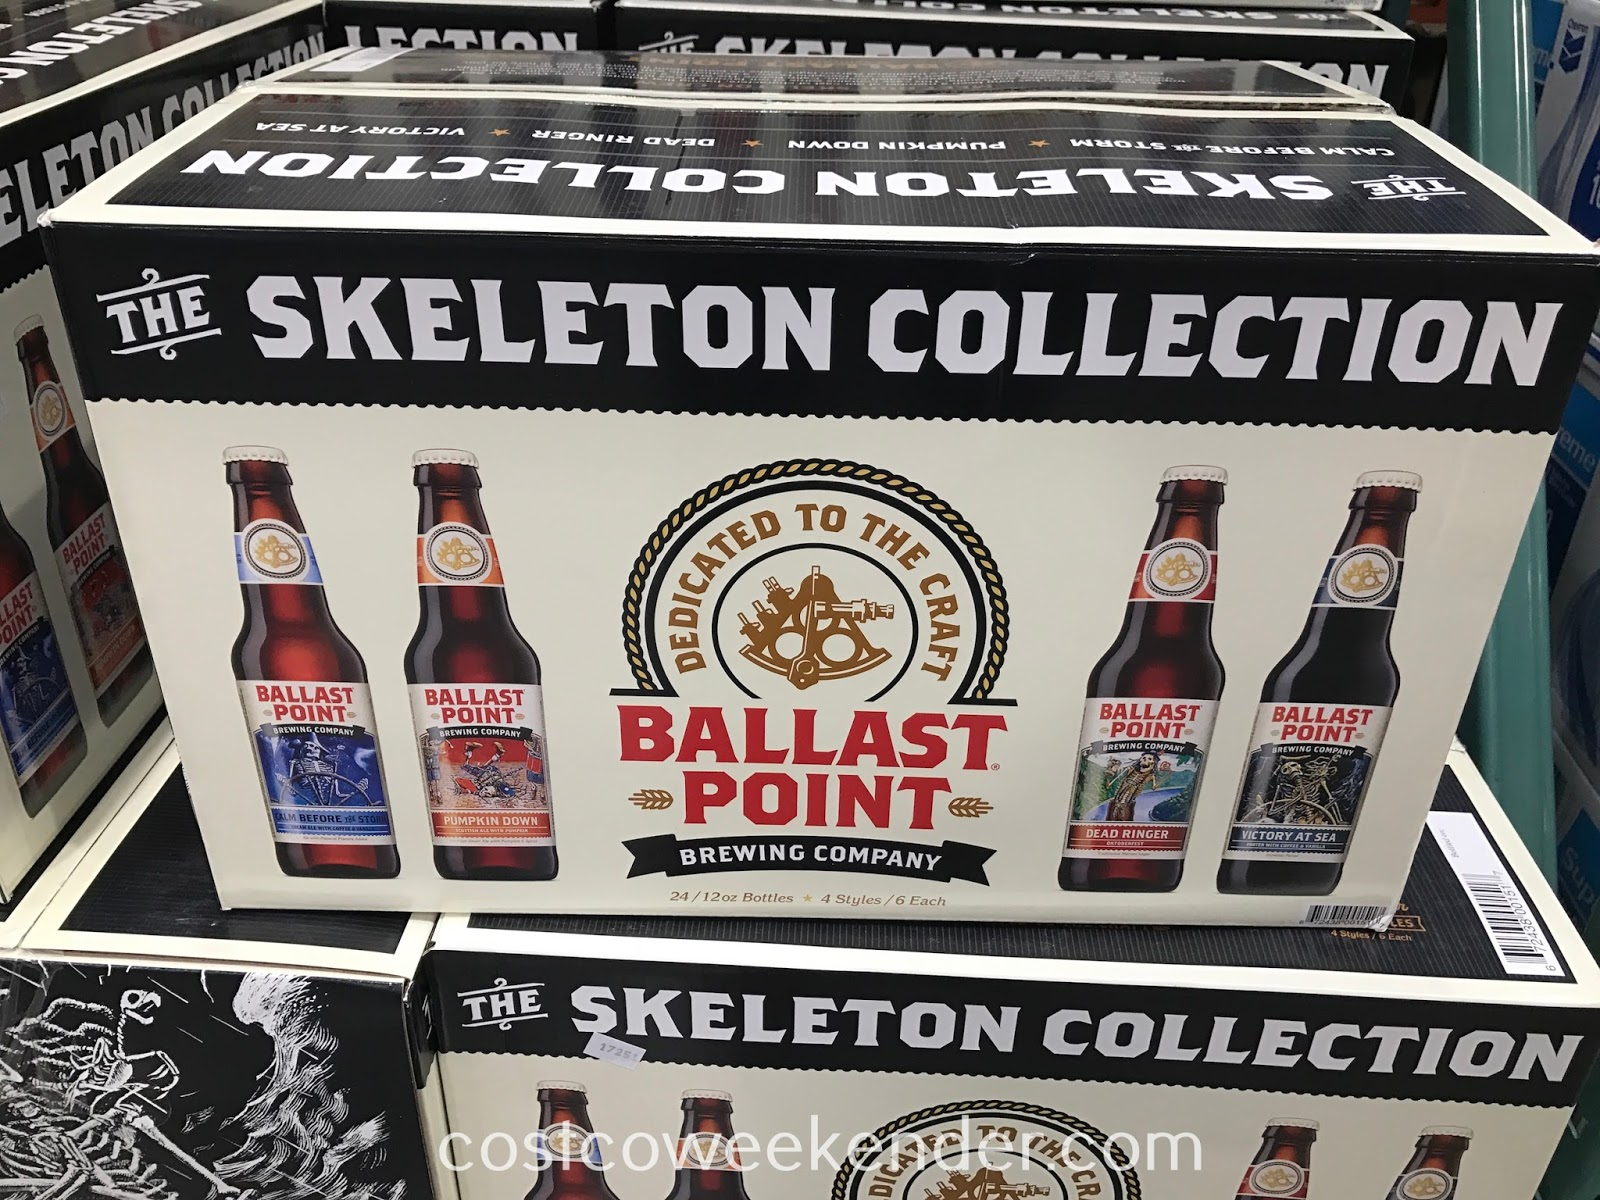 Grab a cold one and drink up from the Ballast Point Brewing Skeleton Collection